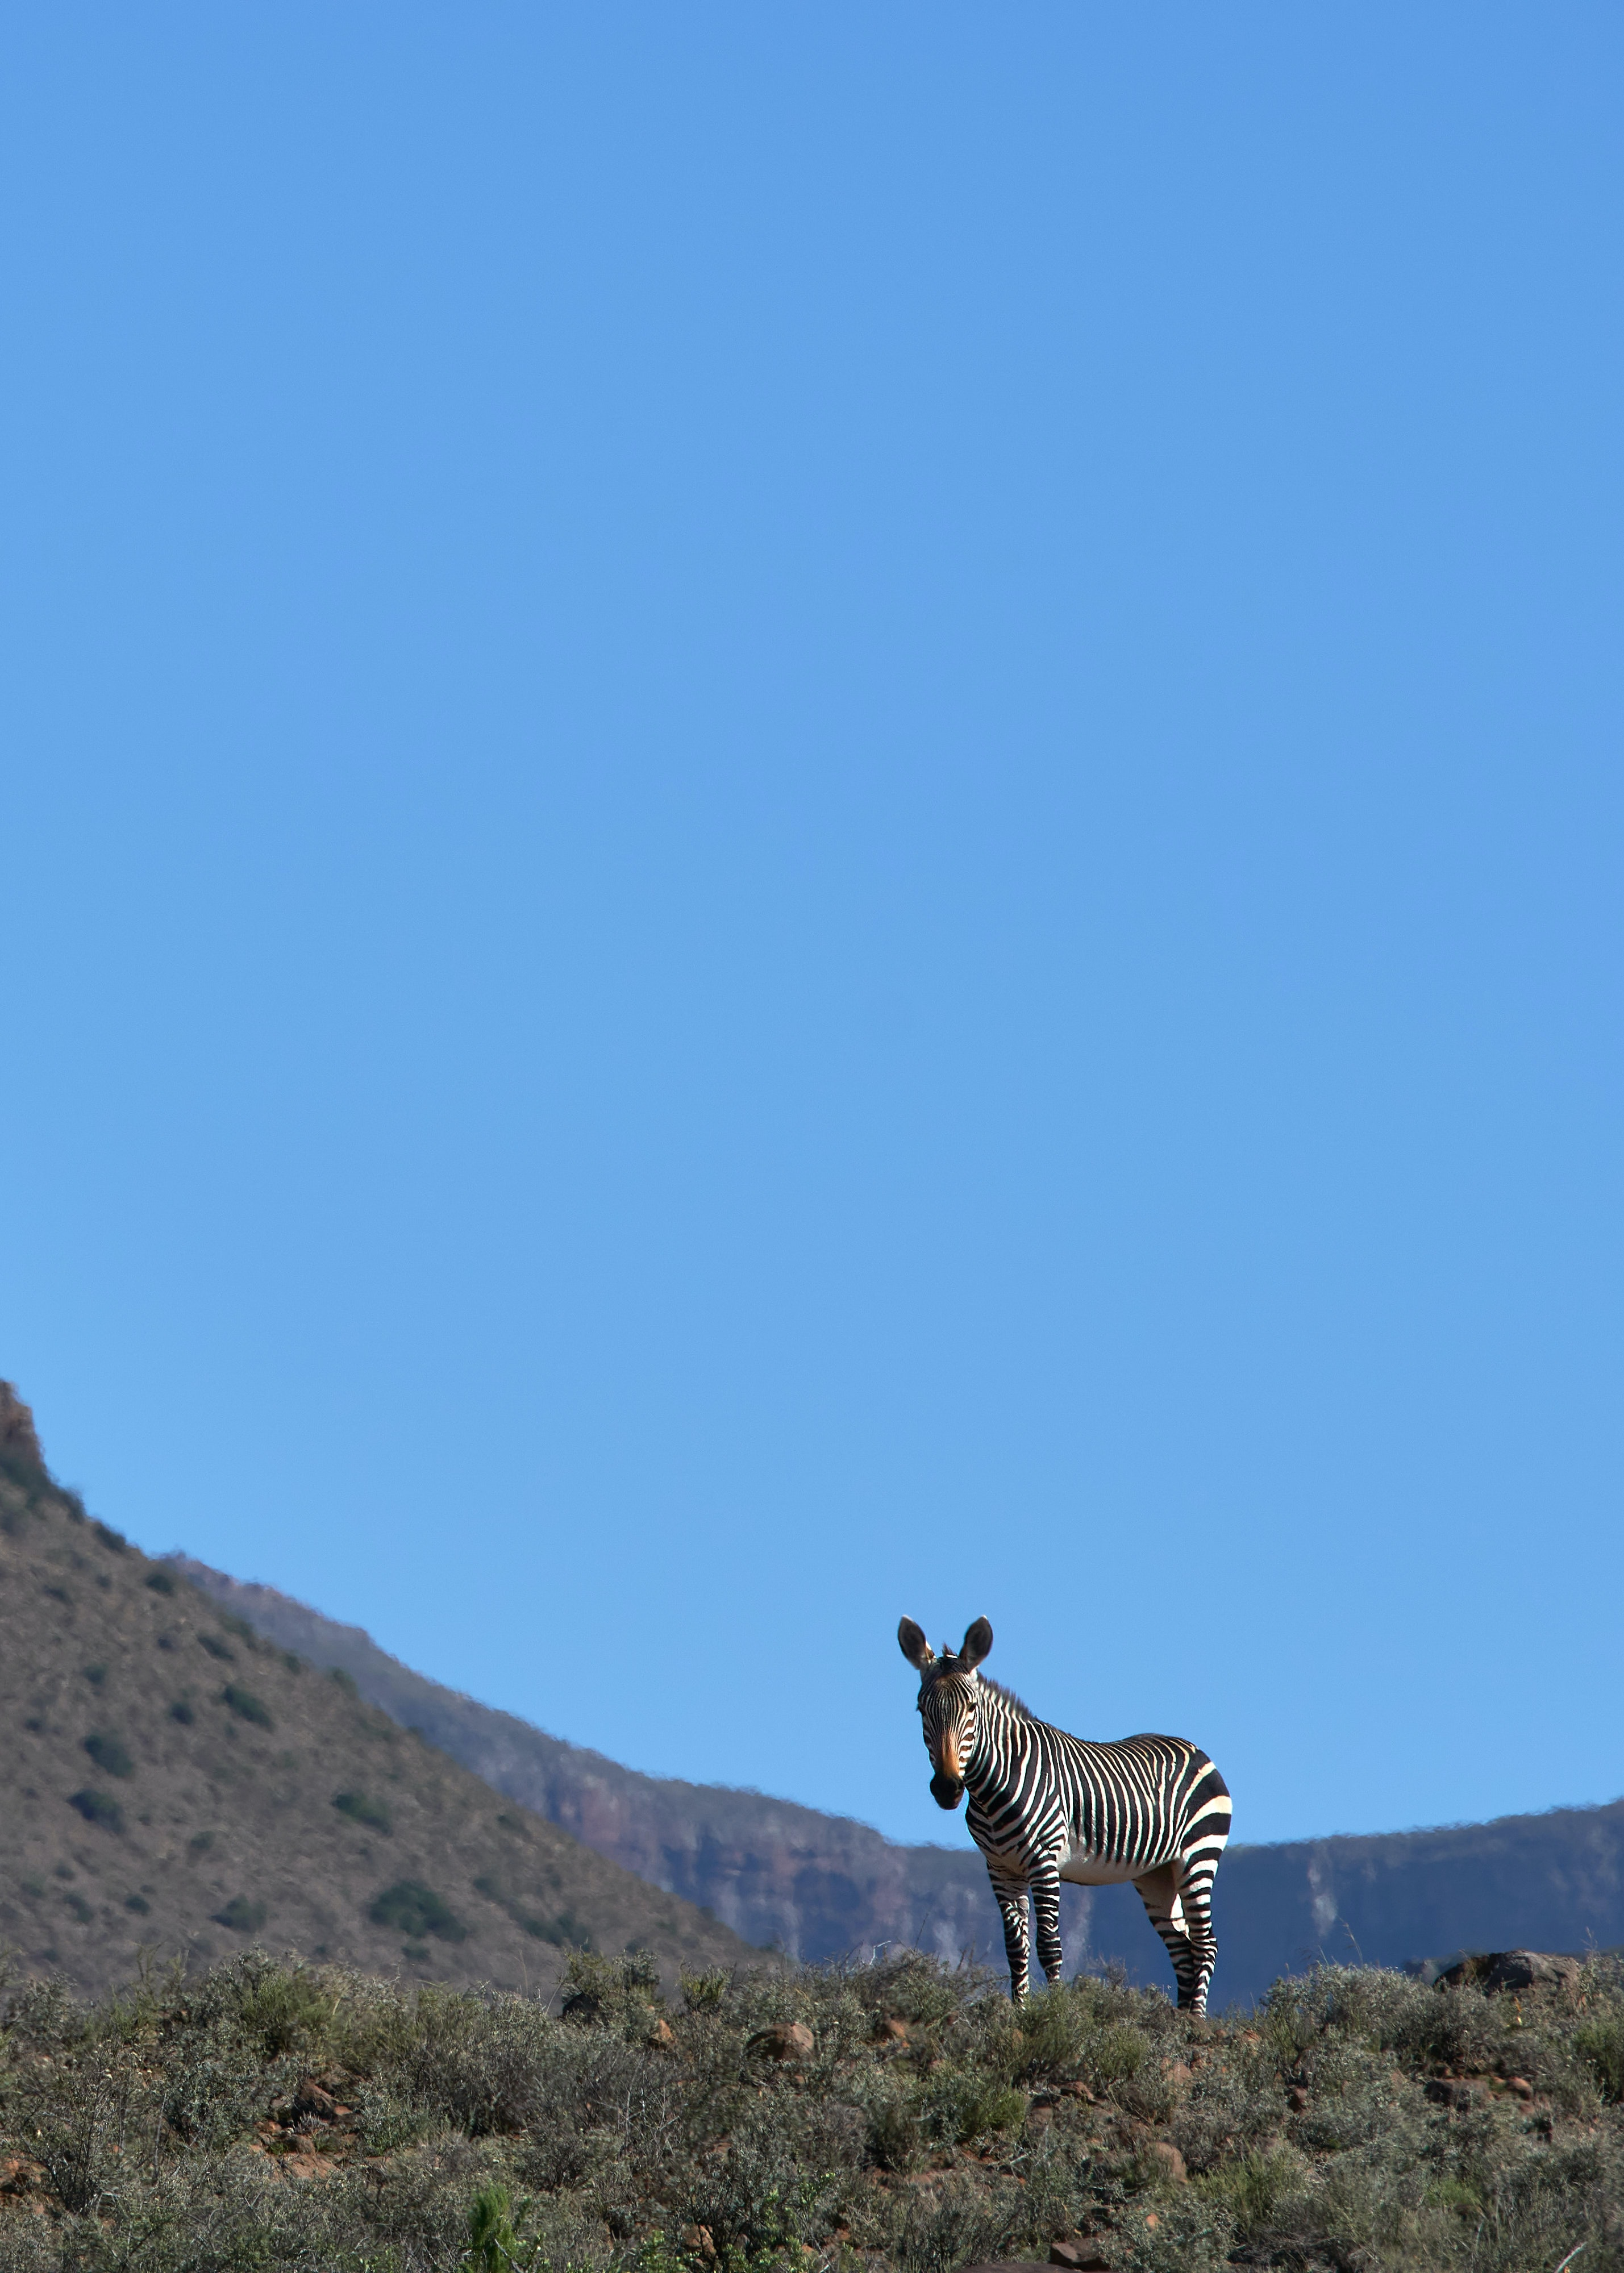 123753 download wallpaper Animals, Zebra, Animal, Grass, Wildlife screensavers and pictures for free